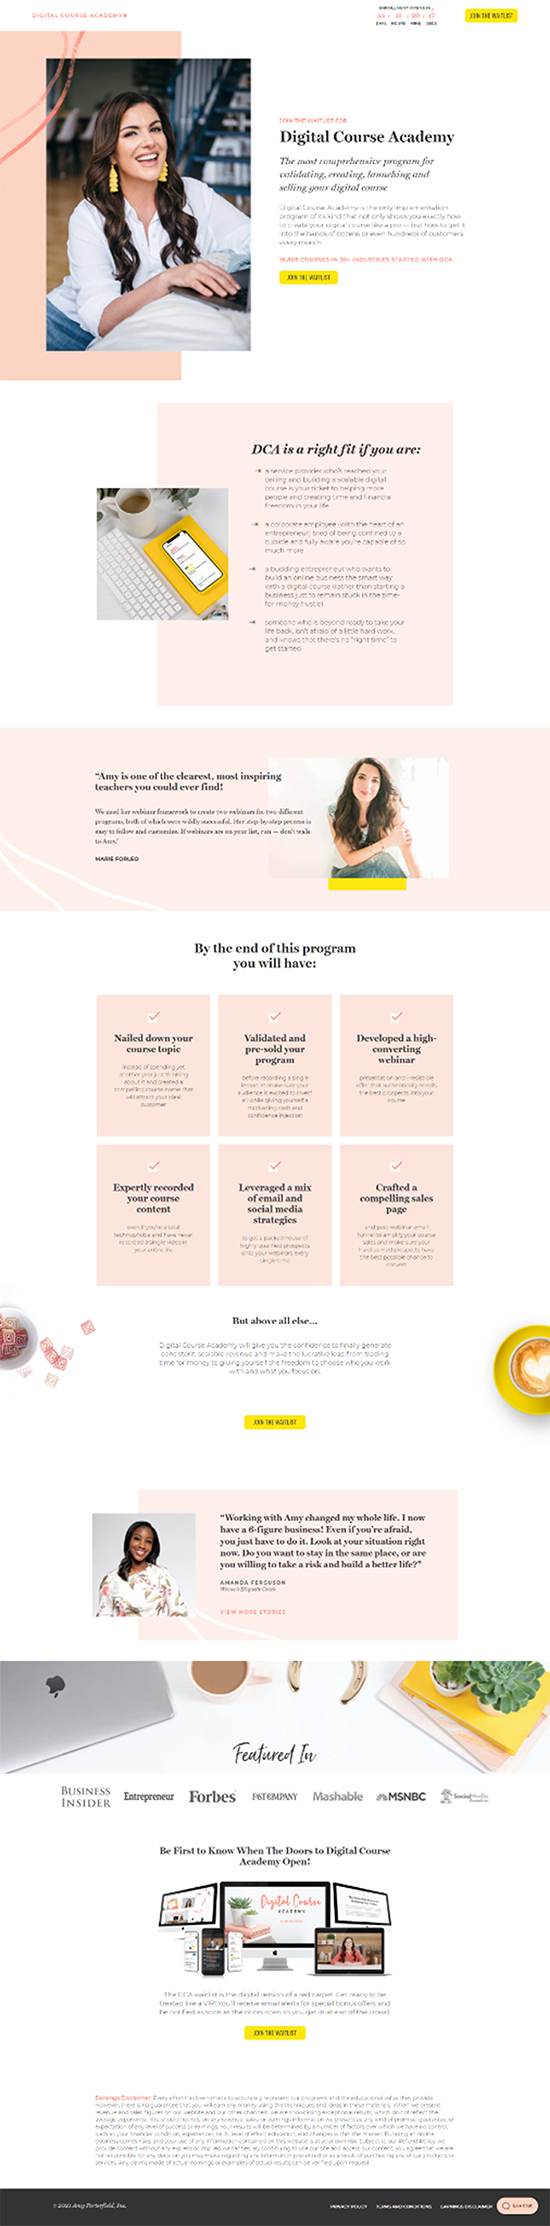 Collect Interest, initial product launch page example.